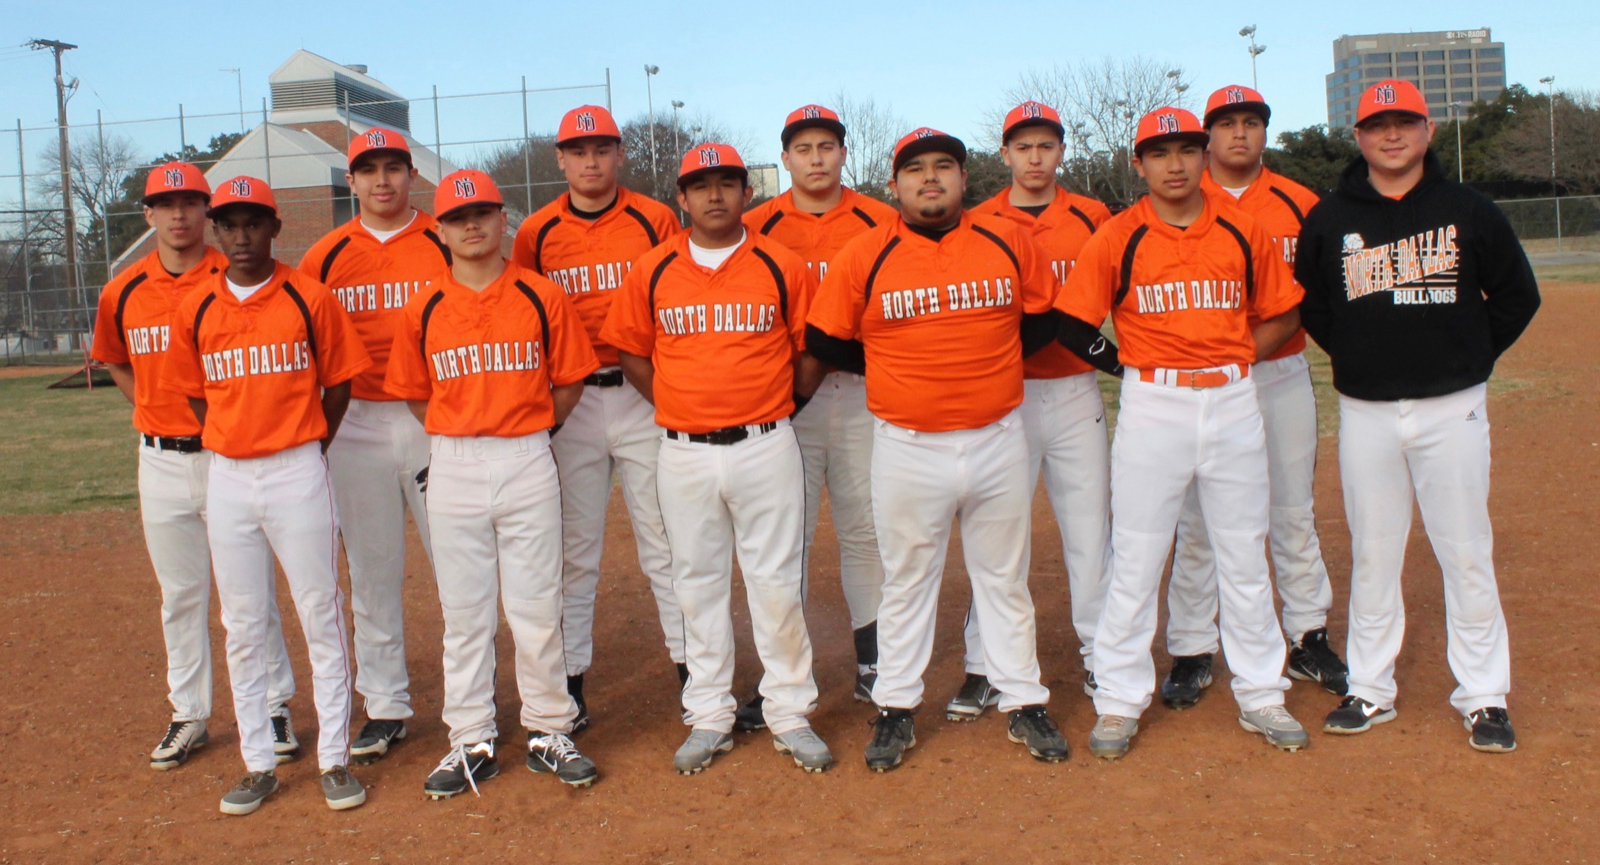 Remember when … the Bulldogs rallied to win playoff series on Jason Medellin's homer in 2014